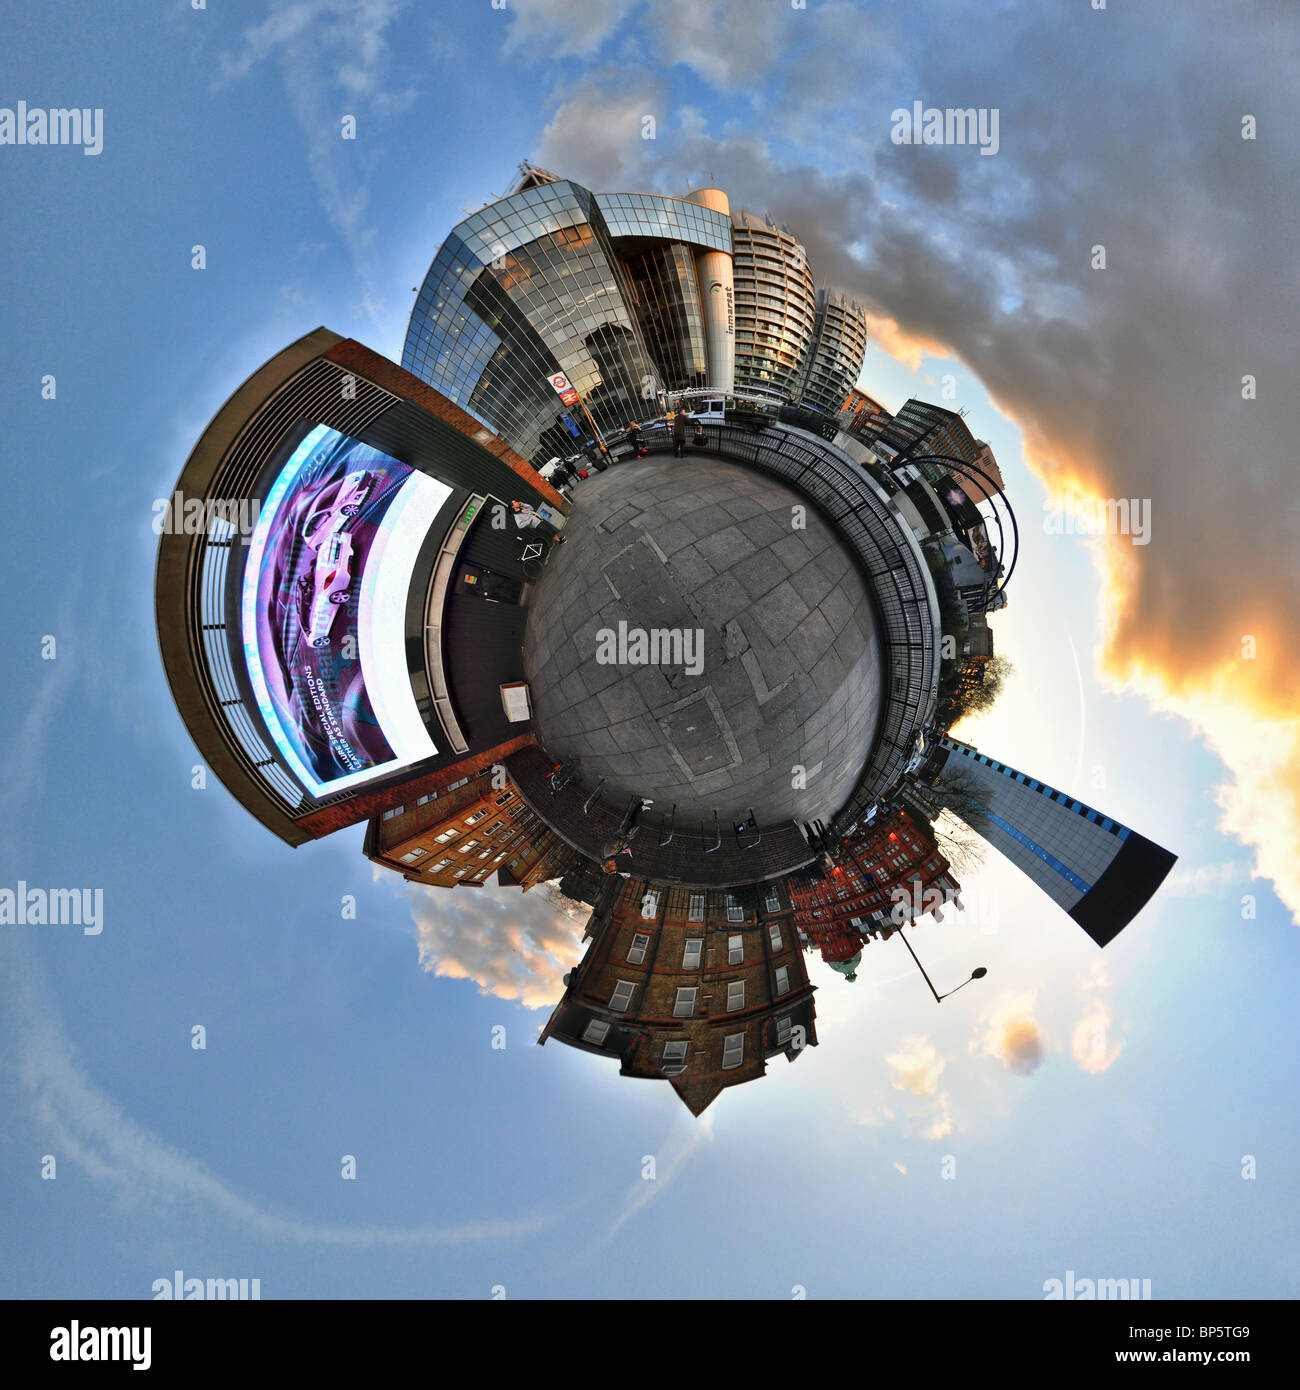 Old street london with little planet effect - Stock Image